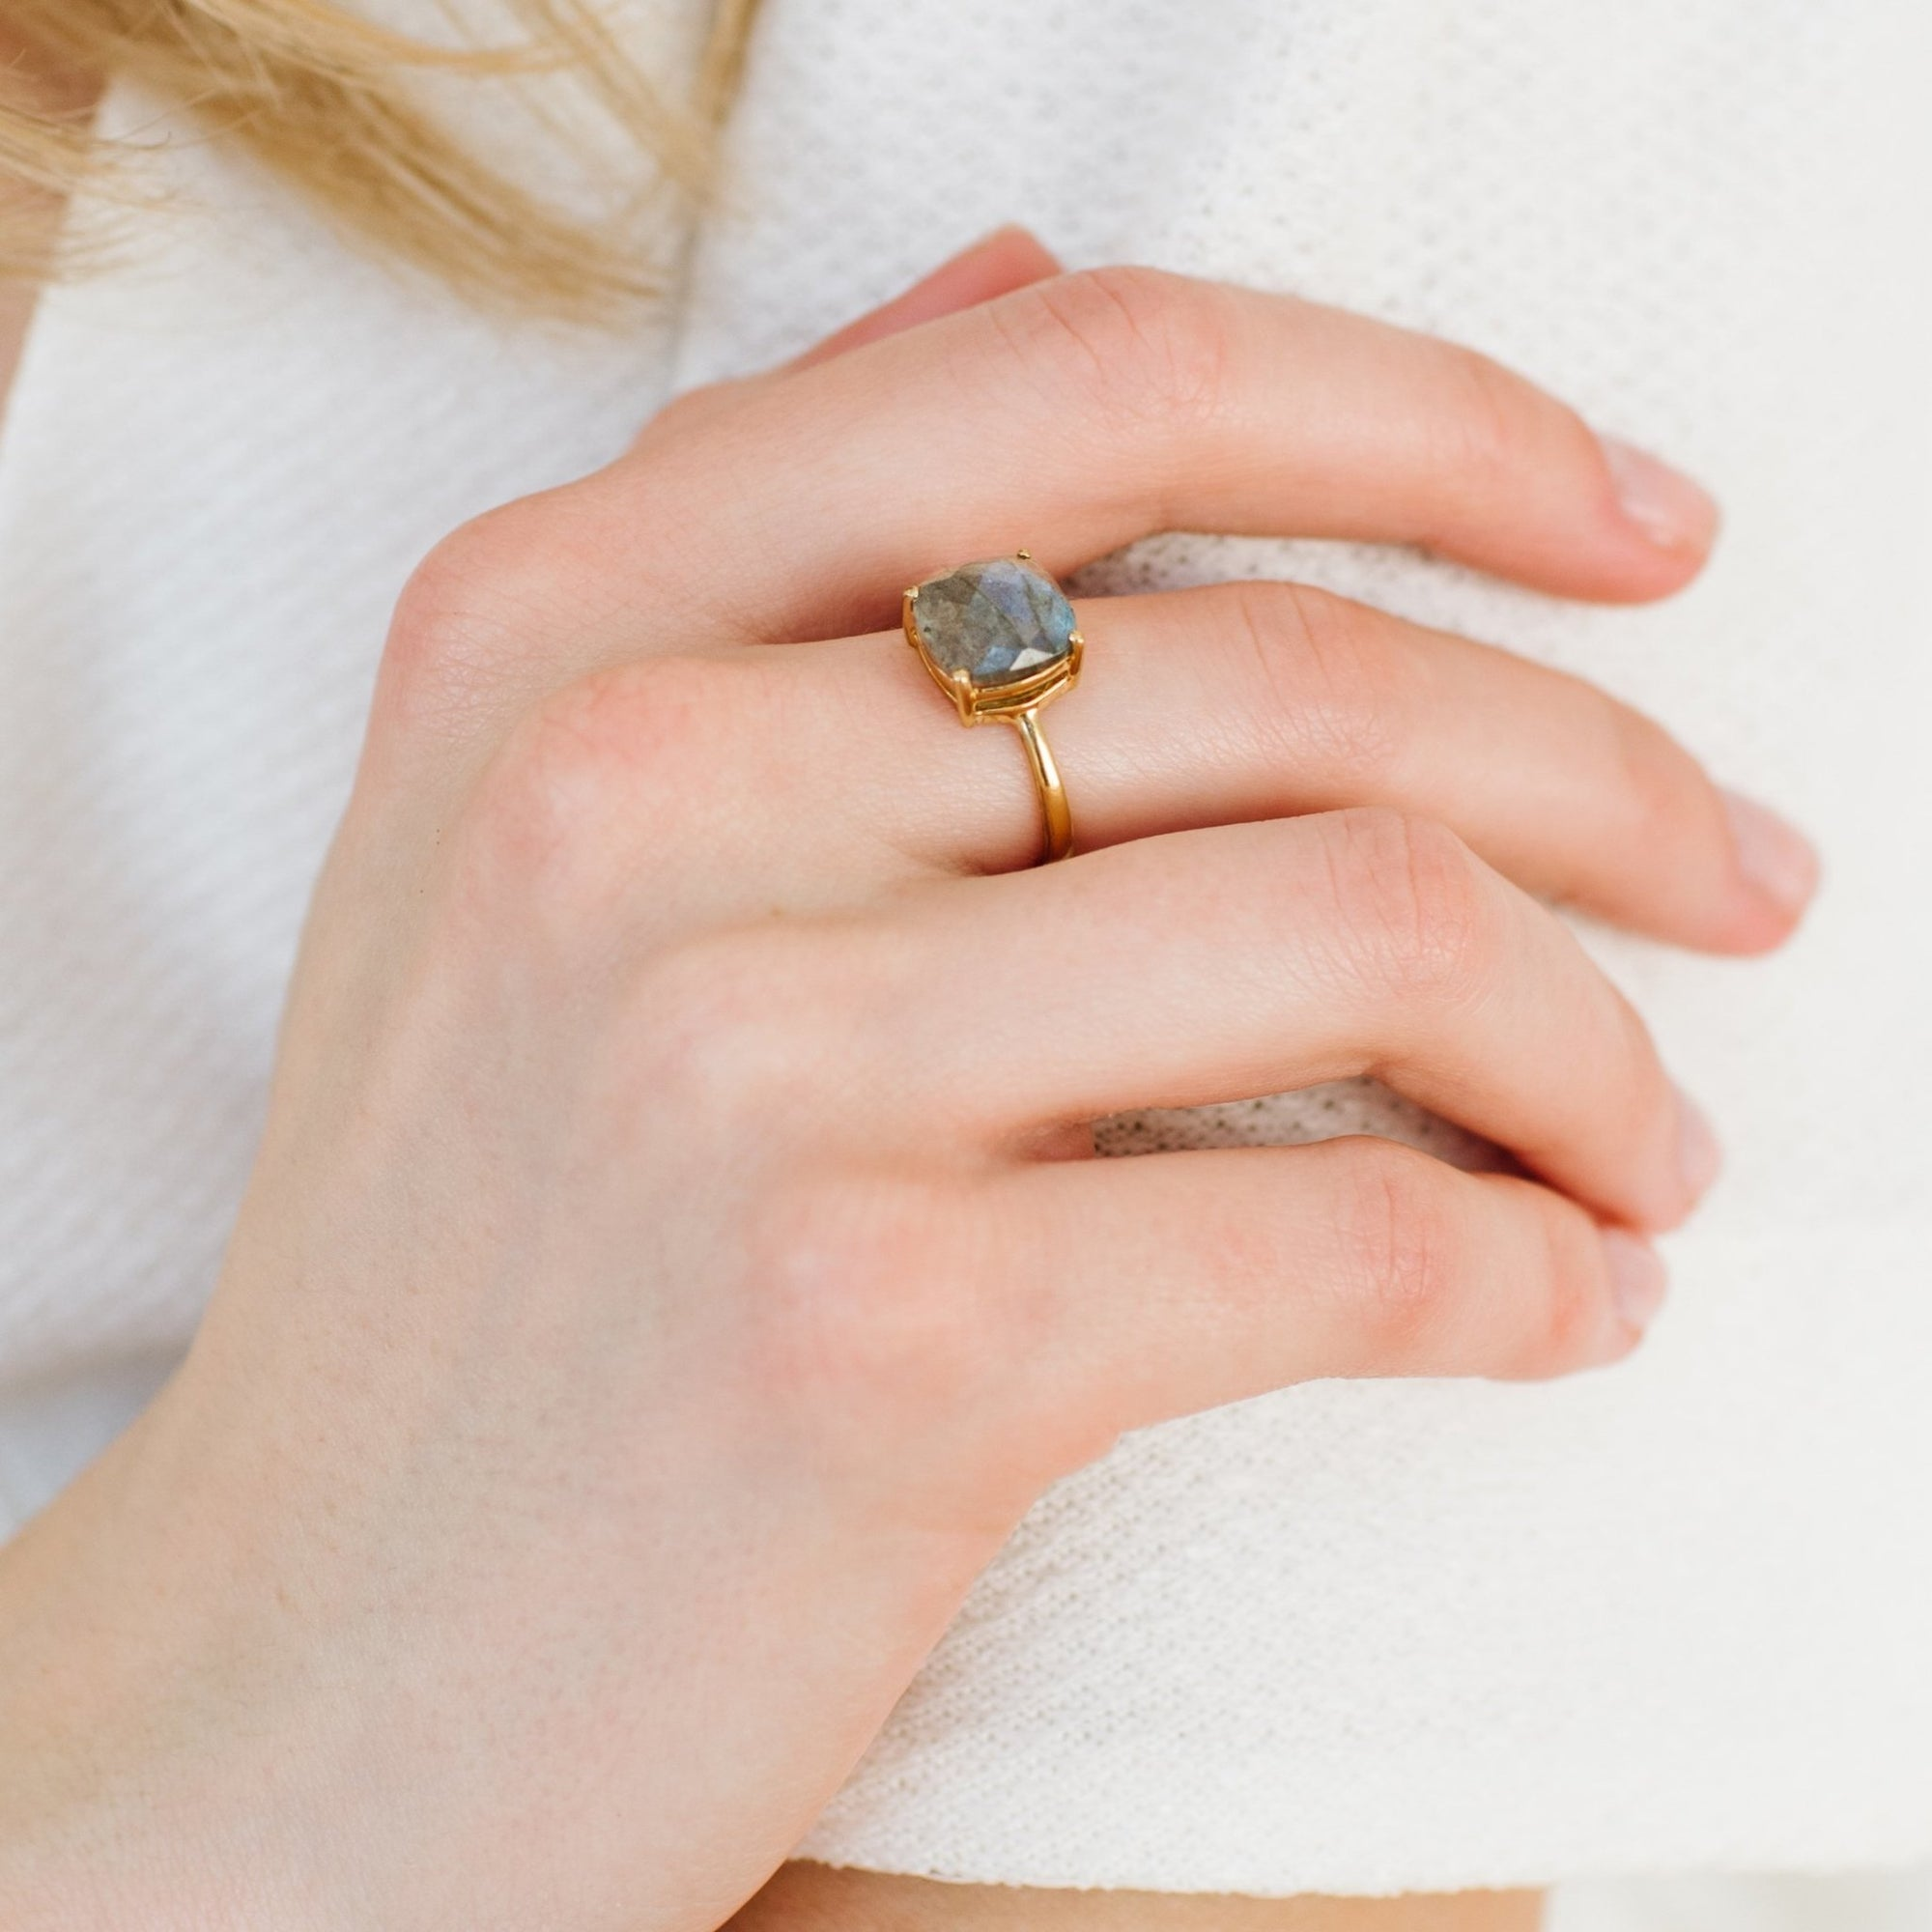 GLEE RING - LABRADORITE & GOLD - SO PRETTY CARA COTTER